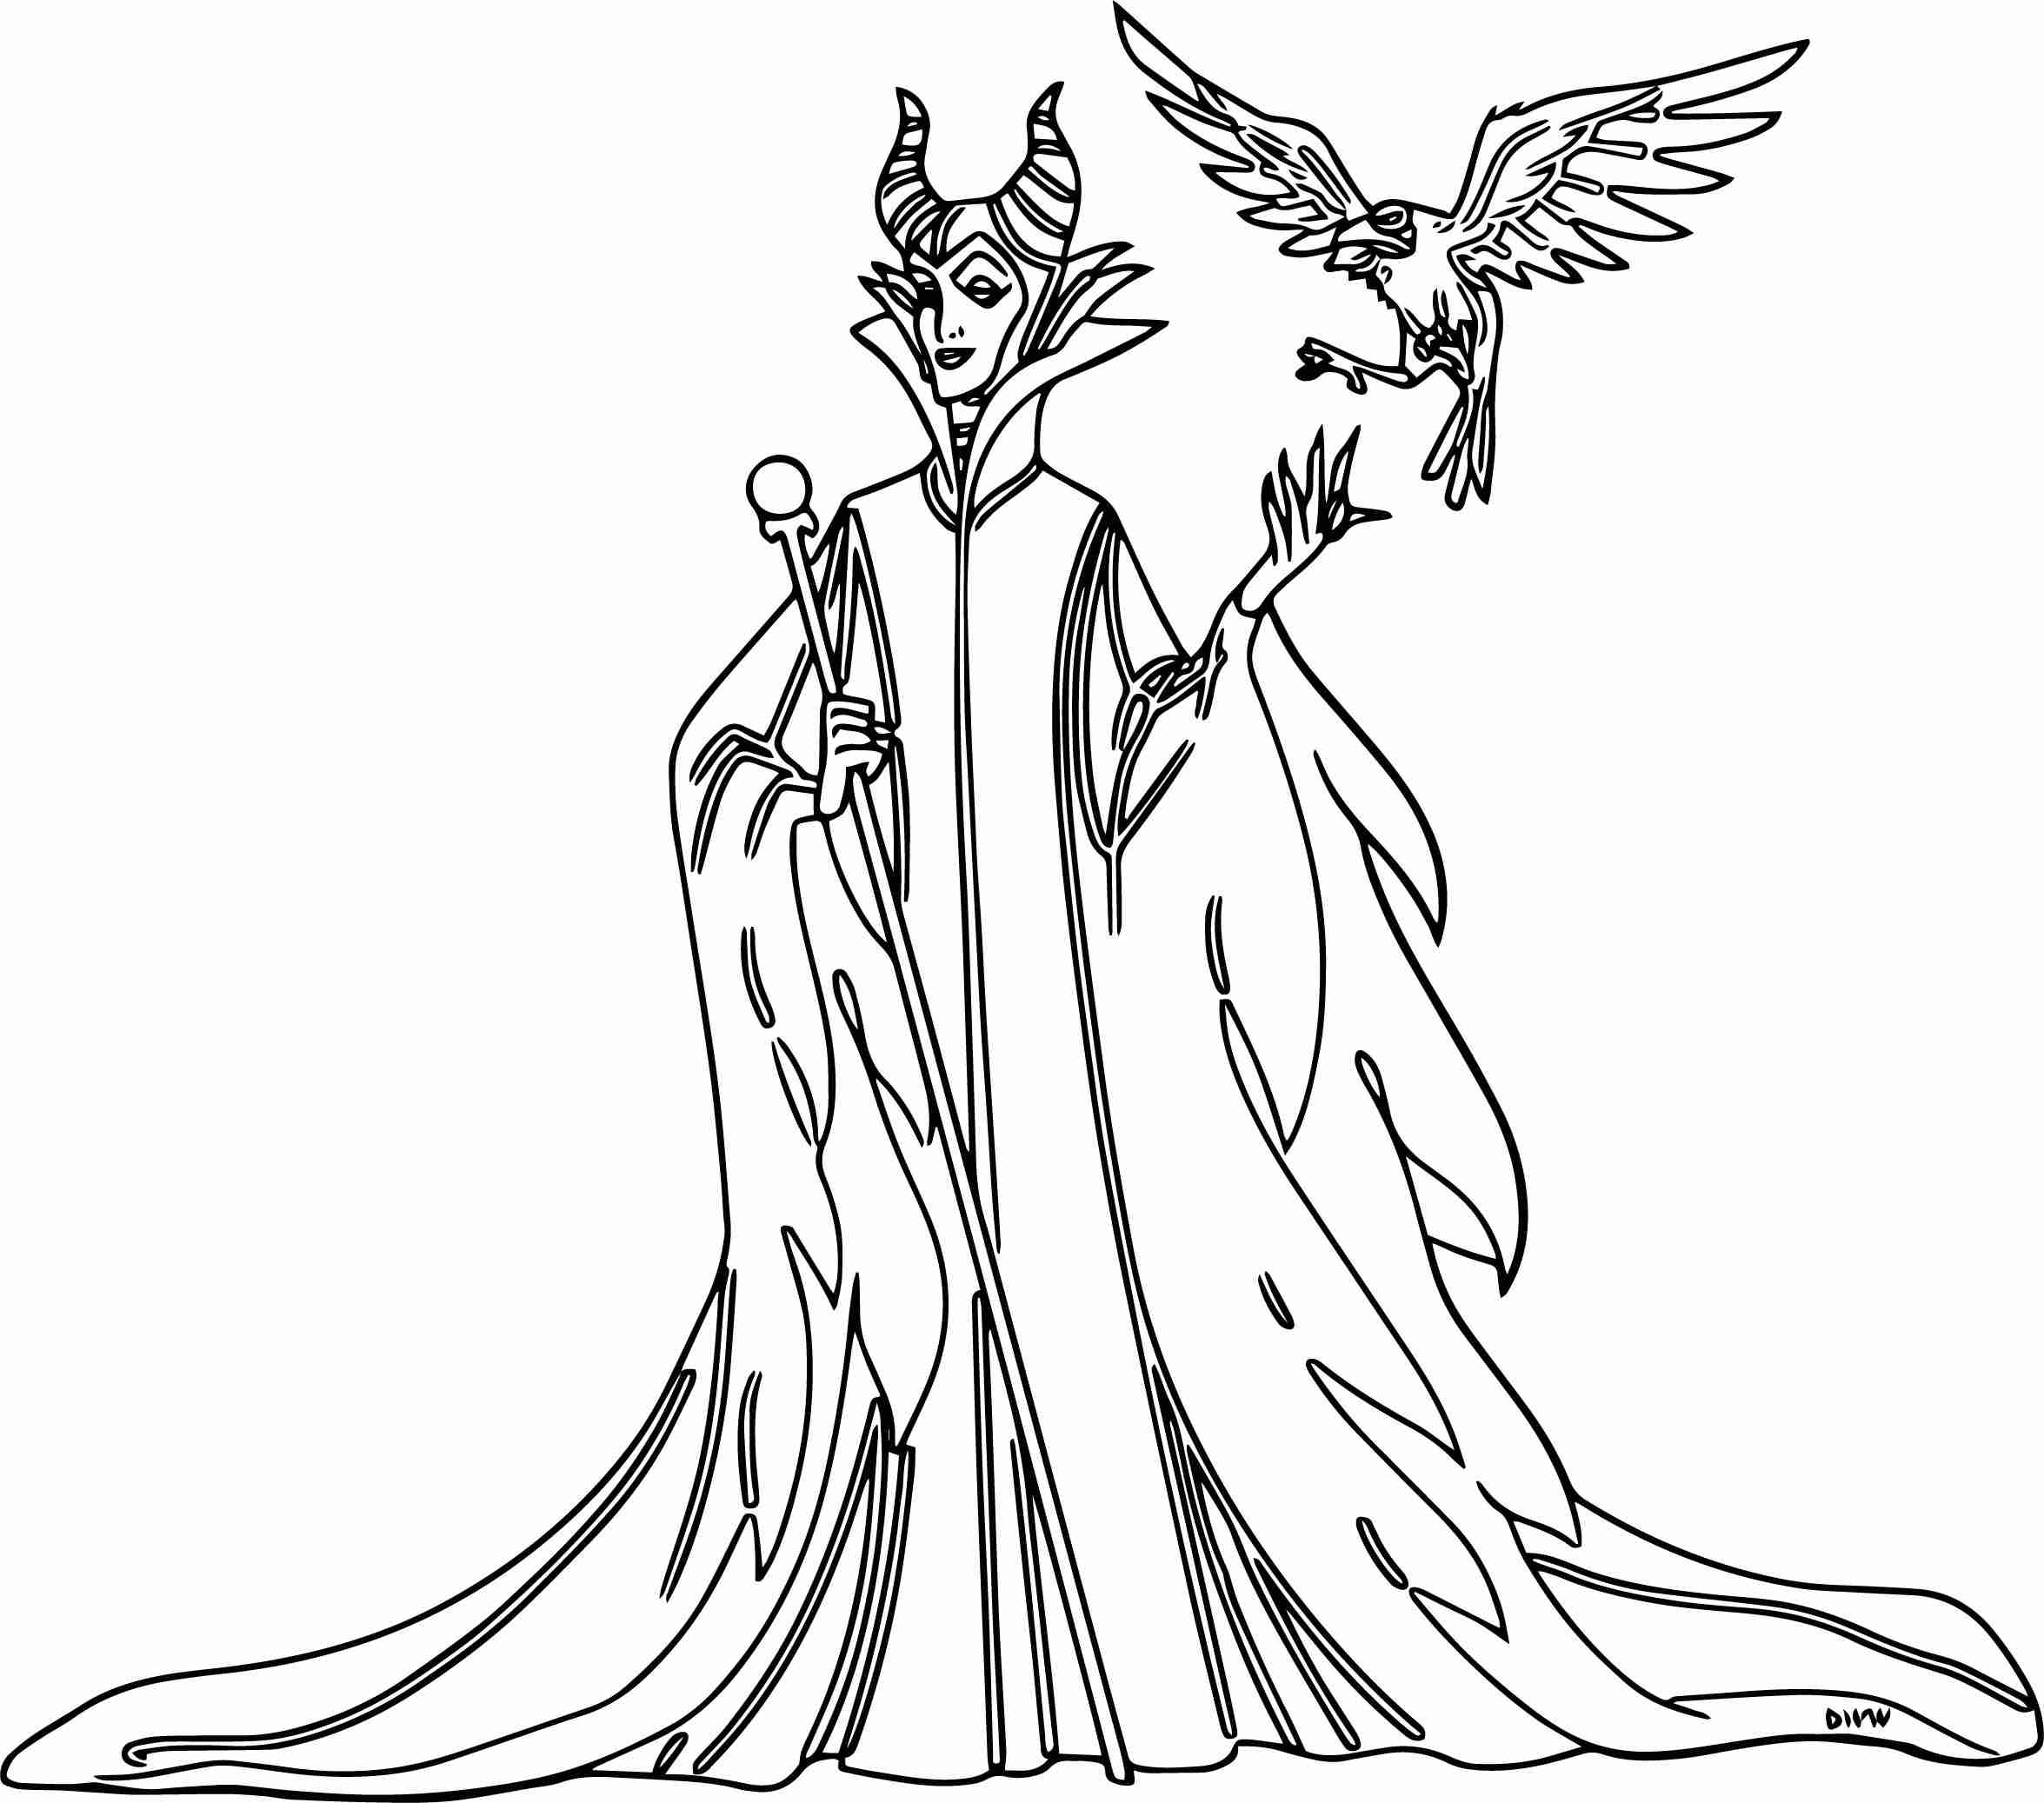 maleficent coloring pages disney movie princesses maleficent free printable coloring maleficent pages